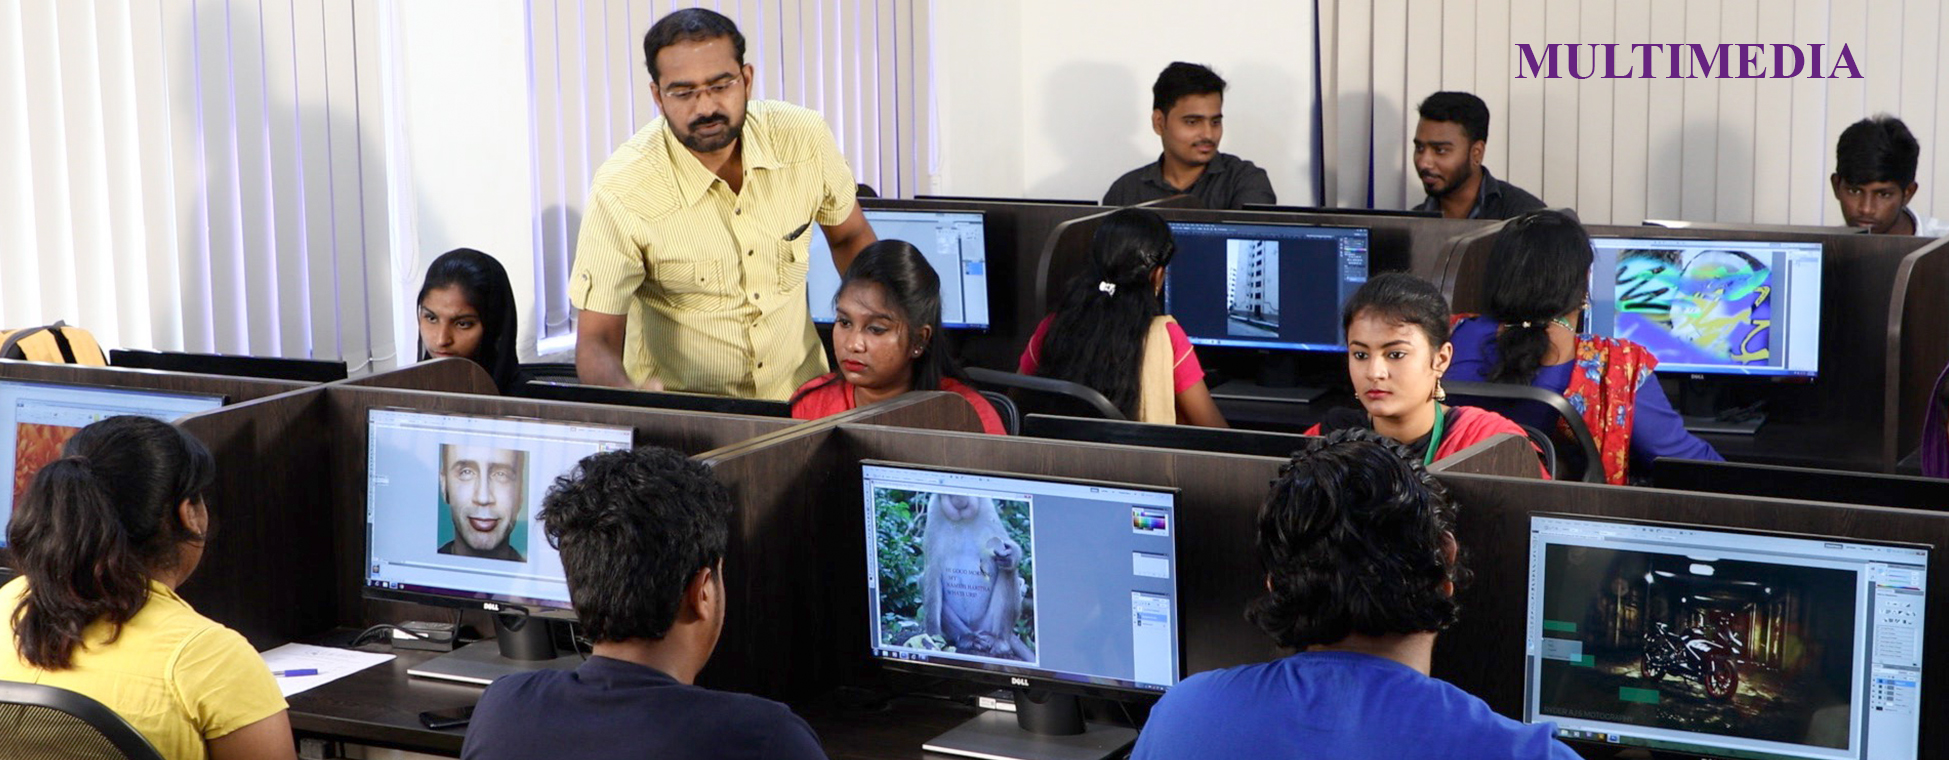 multimedia courses in chennai